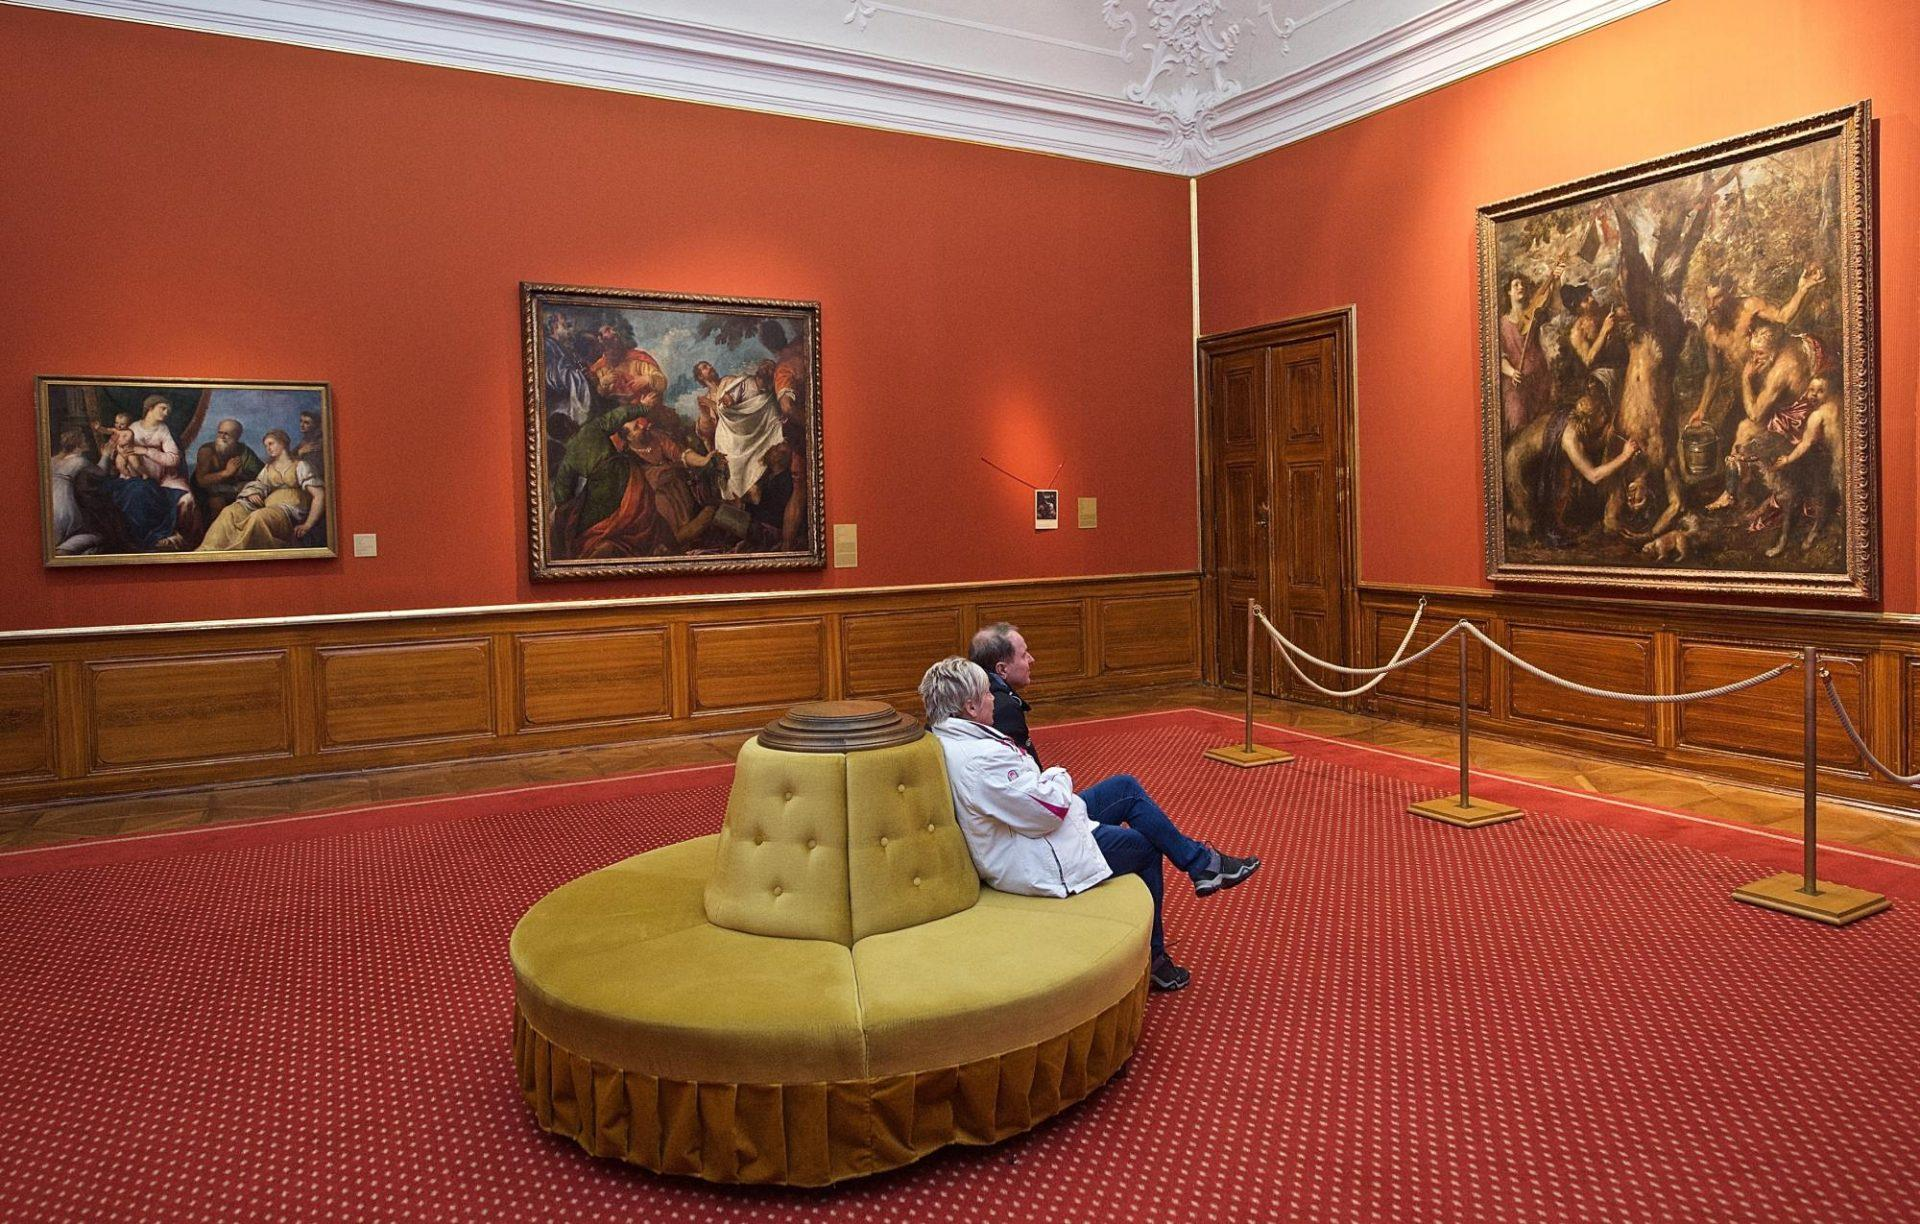 You can just sit there and relax in front of one the most precious paintings in the Czech Republic. – © Markéta Ondrušková